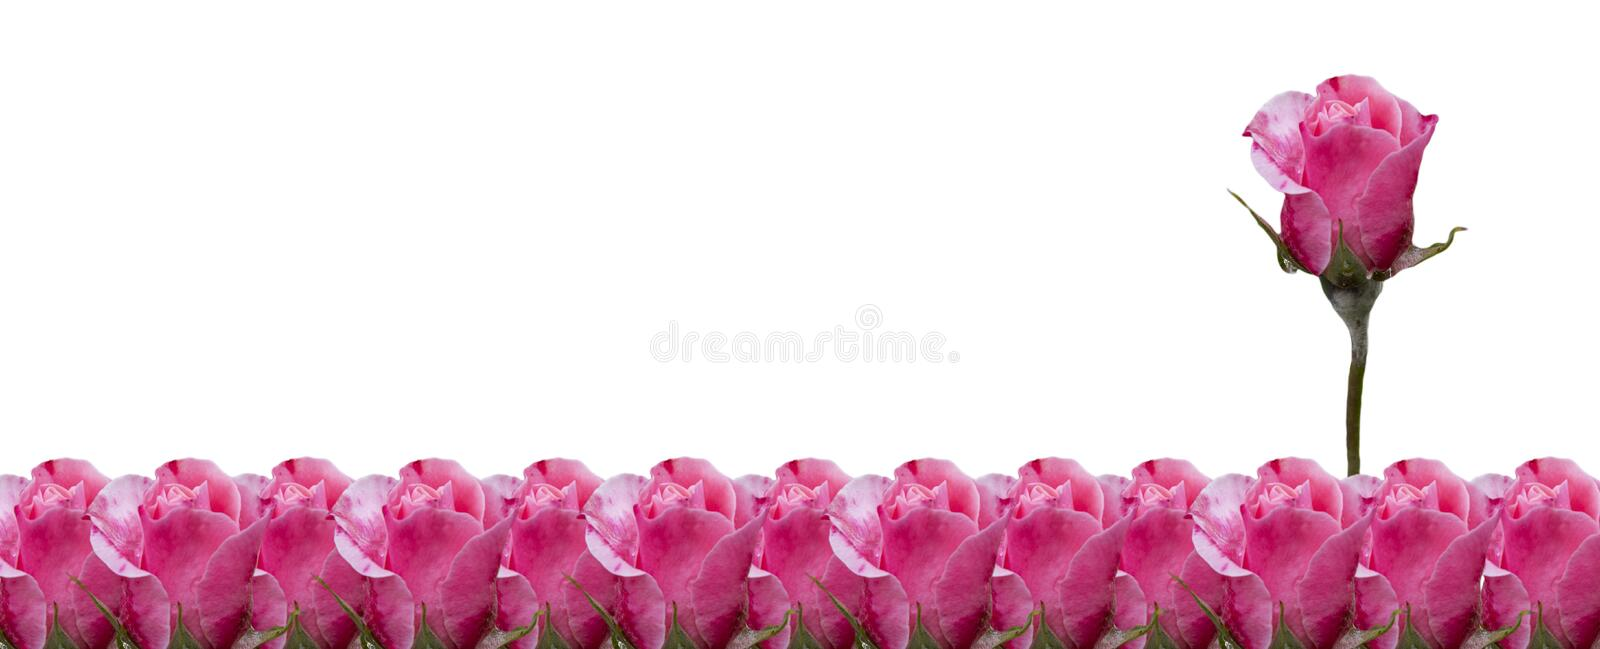 Pink roses isolated on white background royalty free stock photography